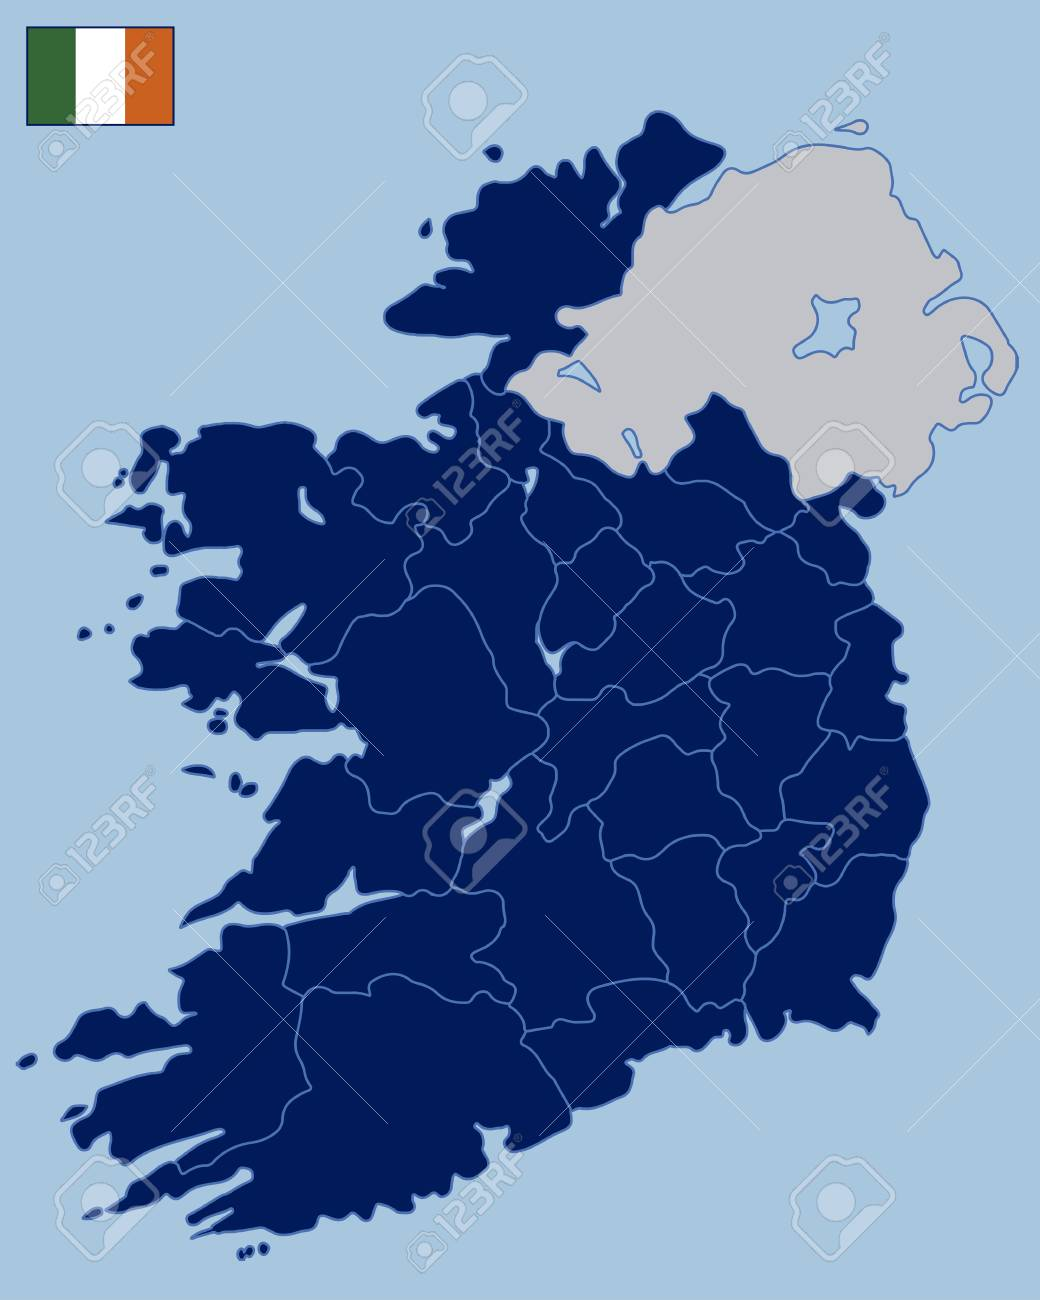 Blank Map Of Ireland.Blank Map Of Republic Of Ireland Royalty Free Cliparts Vectors And